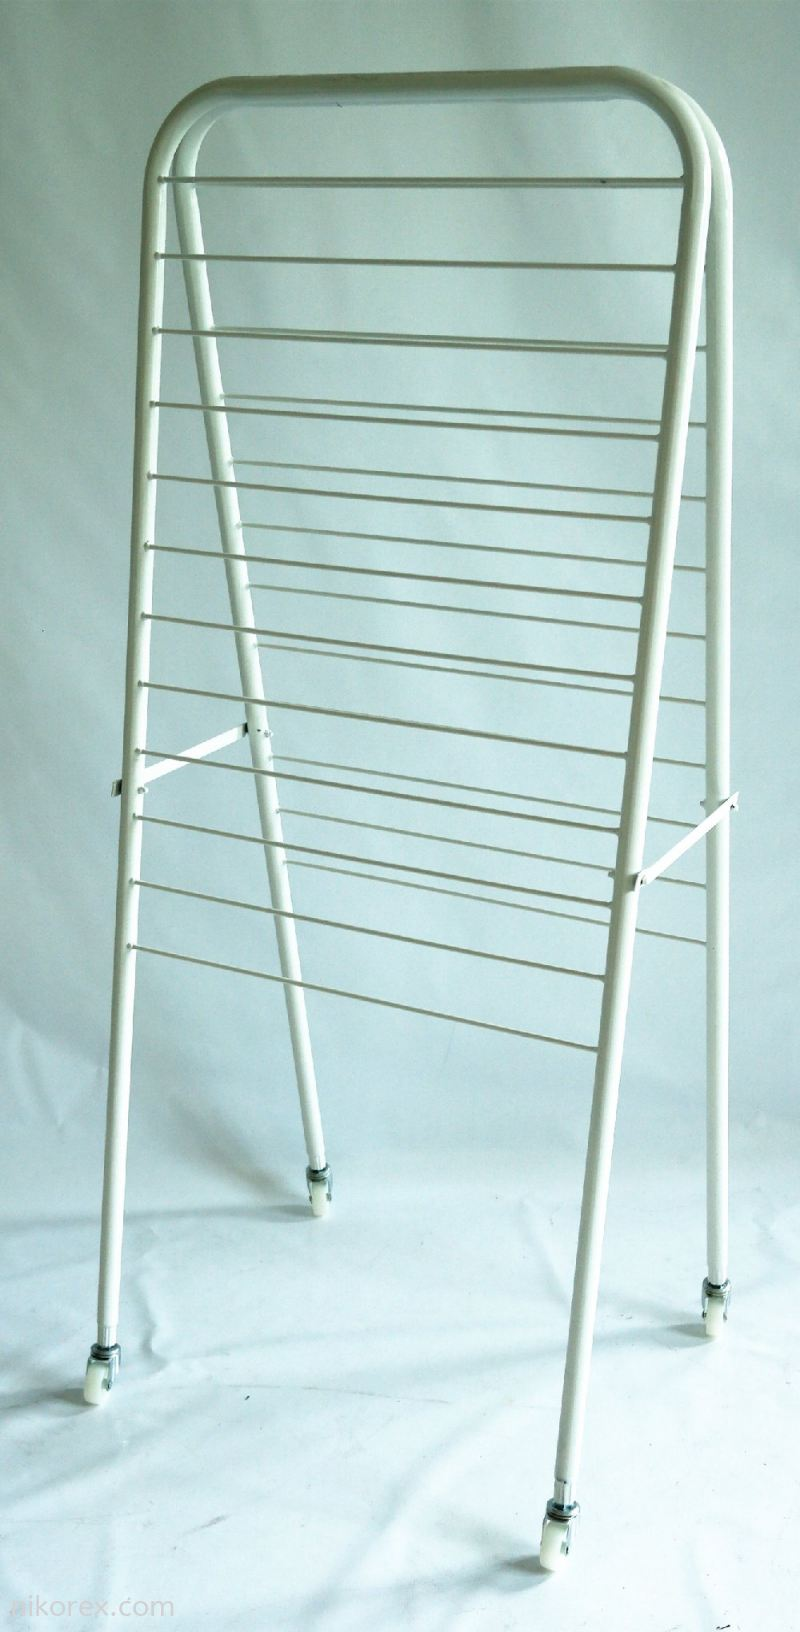 buy a type paper rack layer product online johor actual size preview favourite